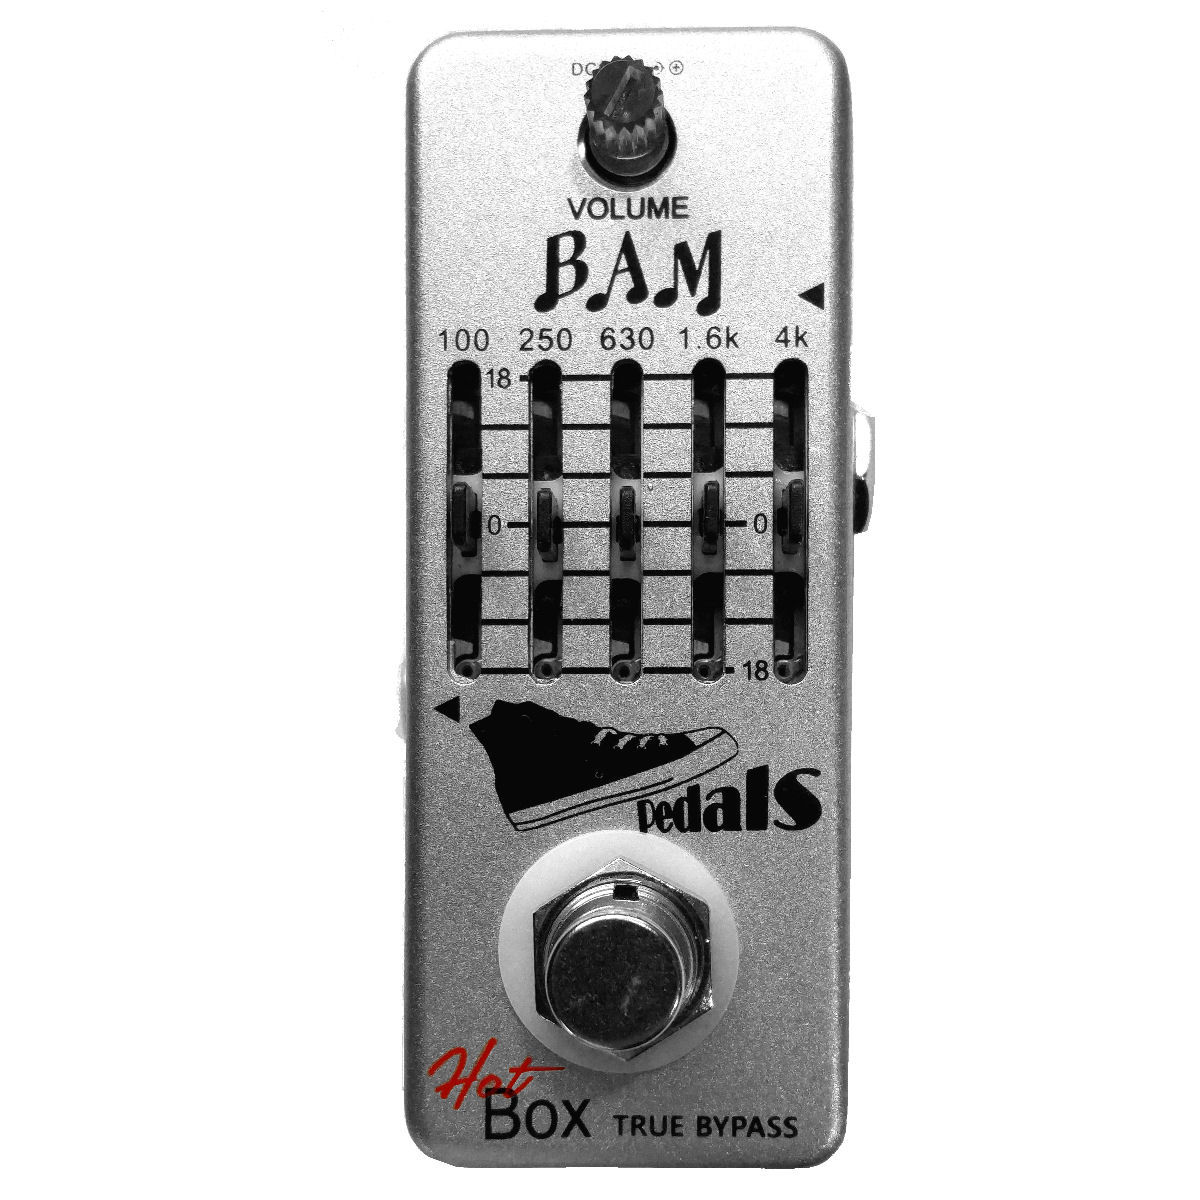 Hot Box Pedals Bam 5-band Guitar Graphic Equalizer Attitude Series